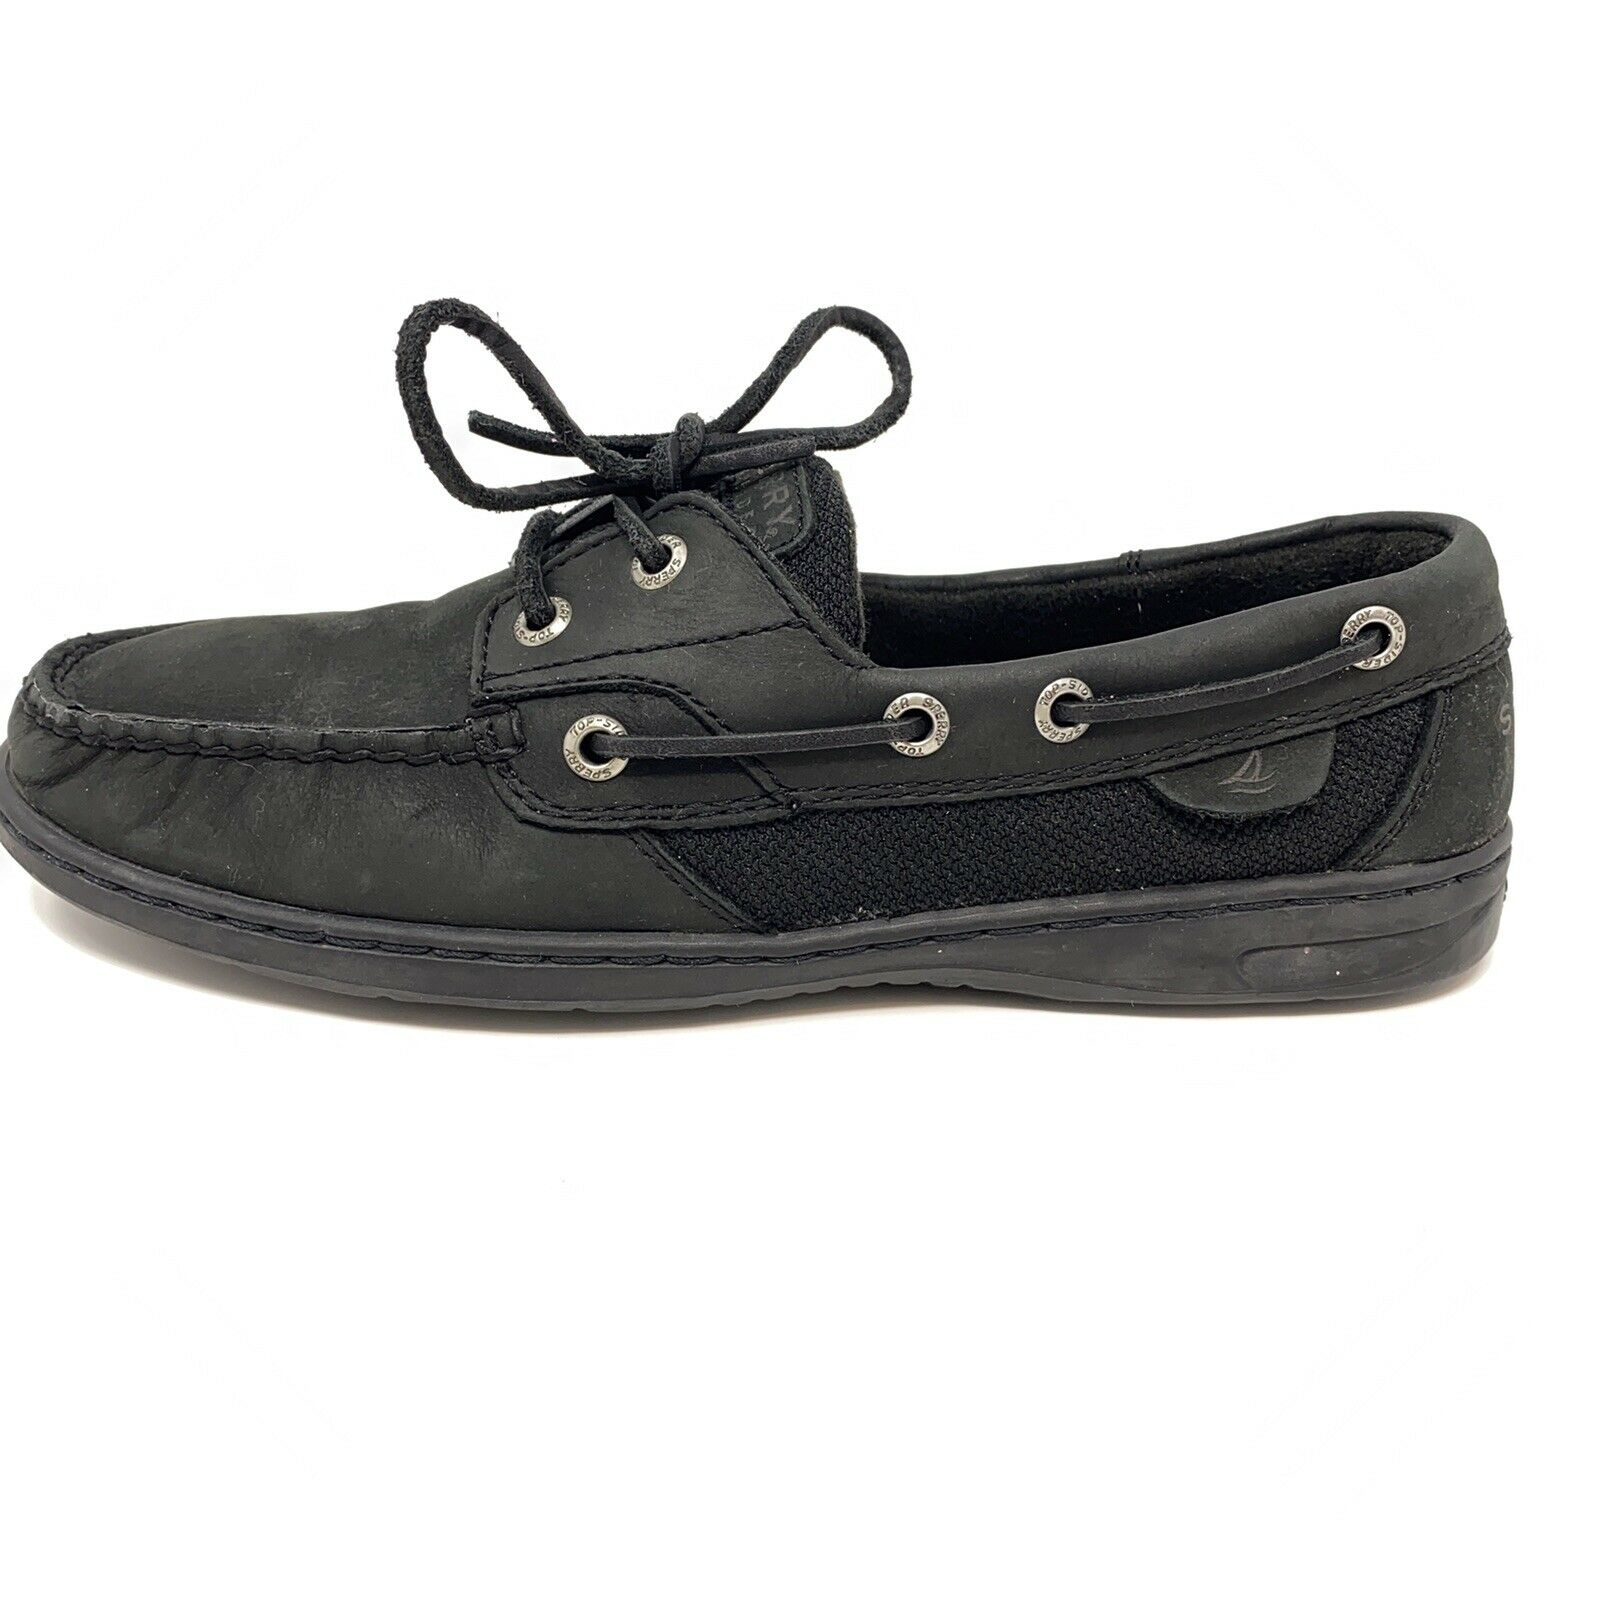 Sperry Top Sider Womens Bluefish 2 Eye 9120205 Black Lace Up Boat Shoes Sz 8 M